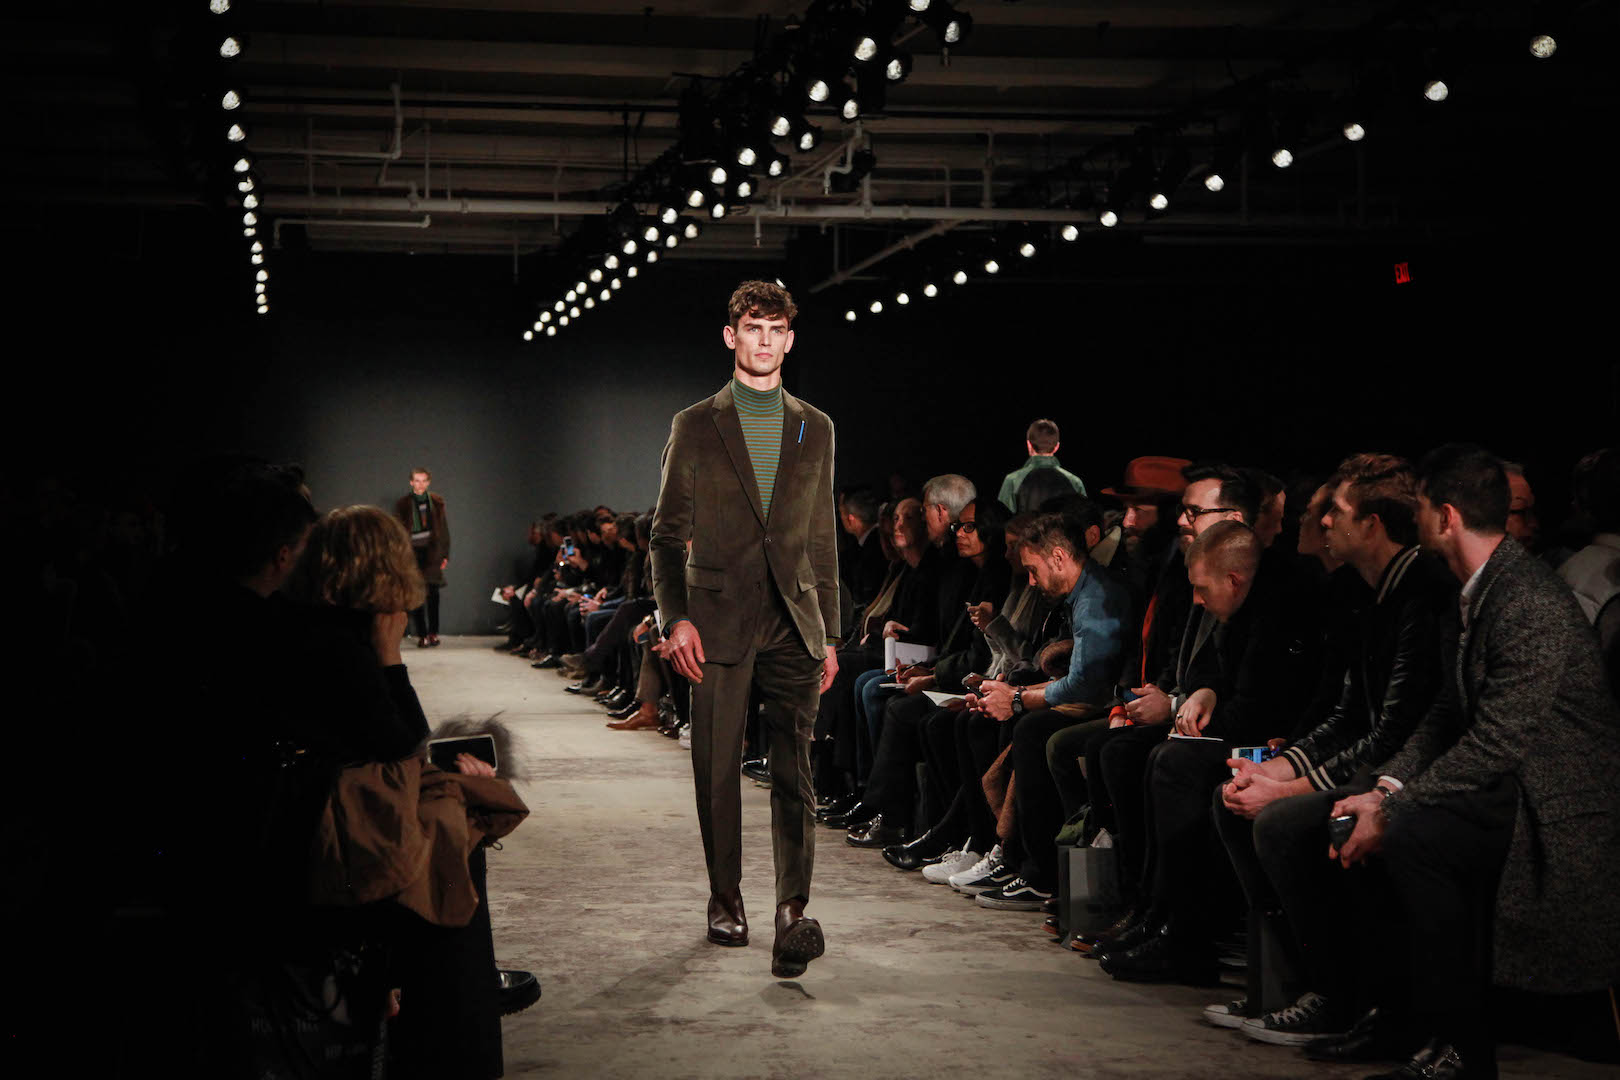 IMG 6521 - style, review - Todd Snyder - Todd Snyder, NYFW, Fashion - Todd Snyder